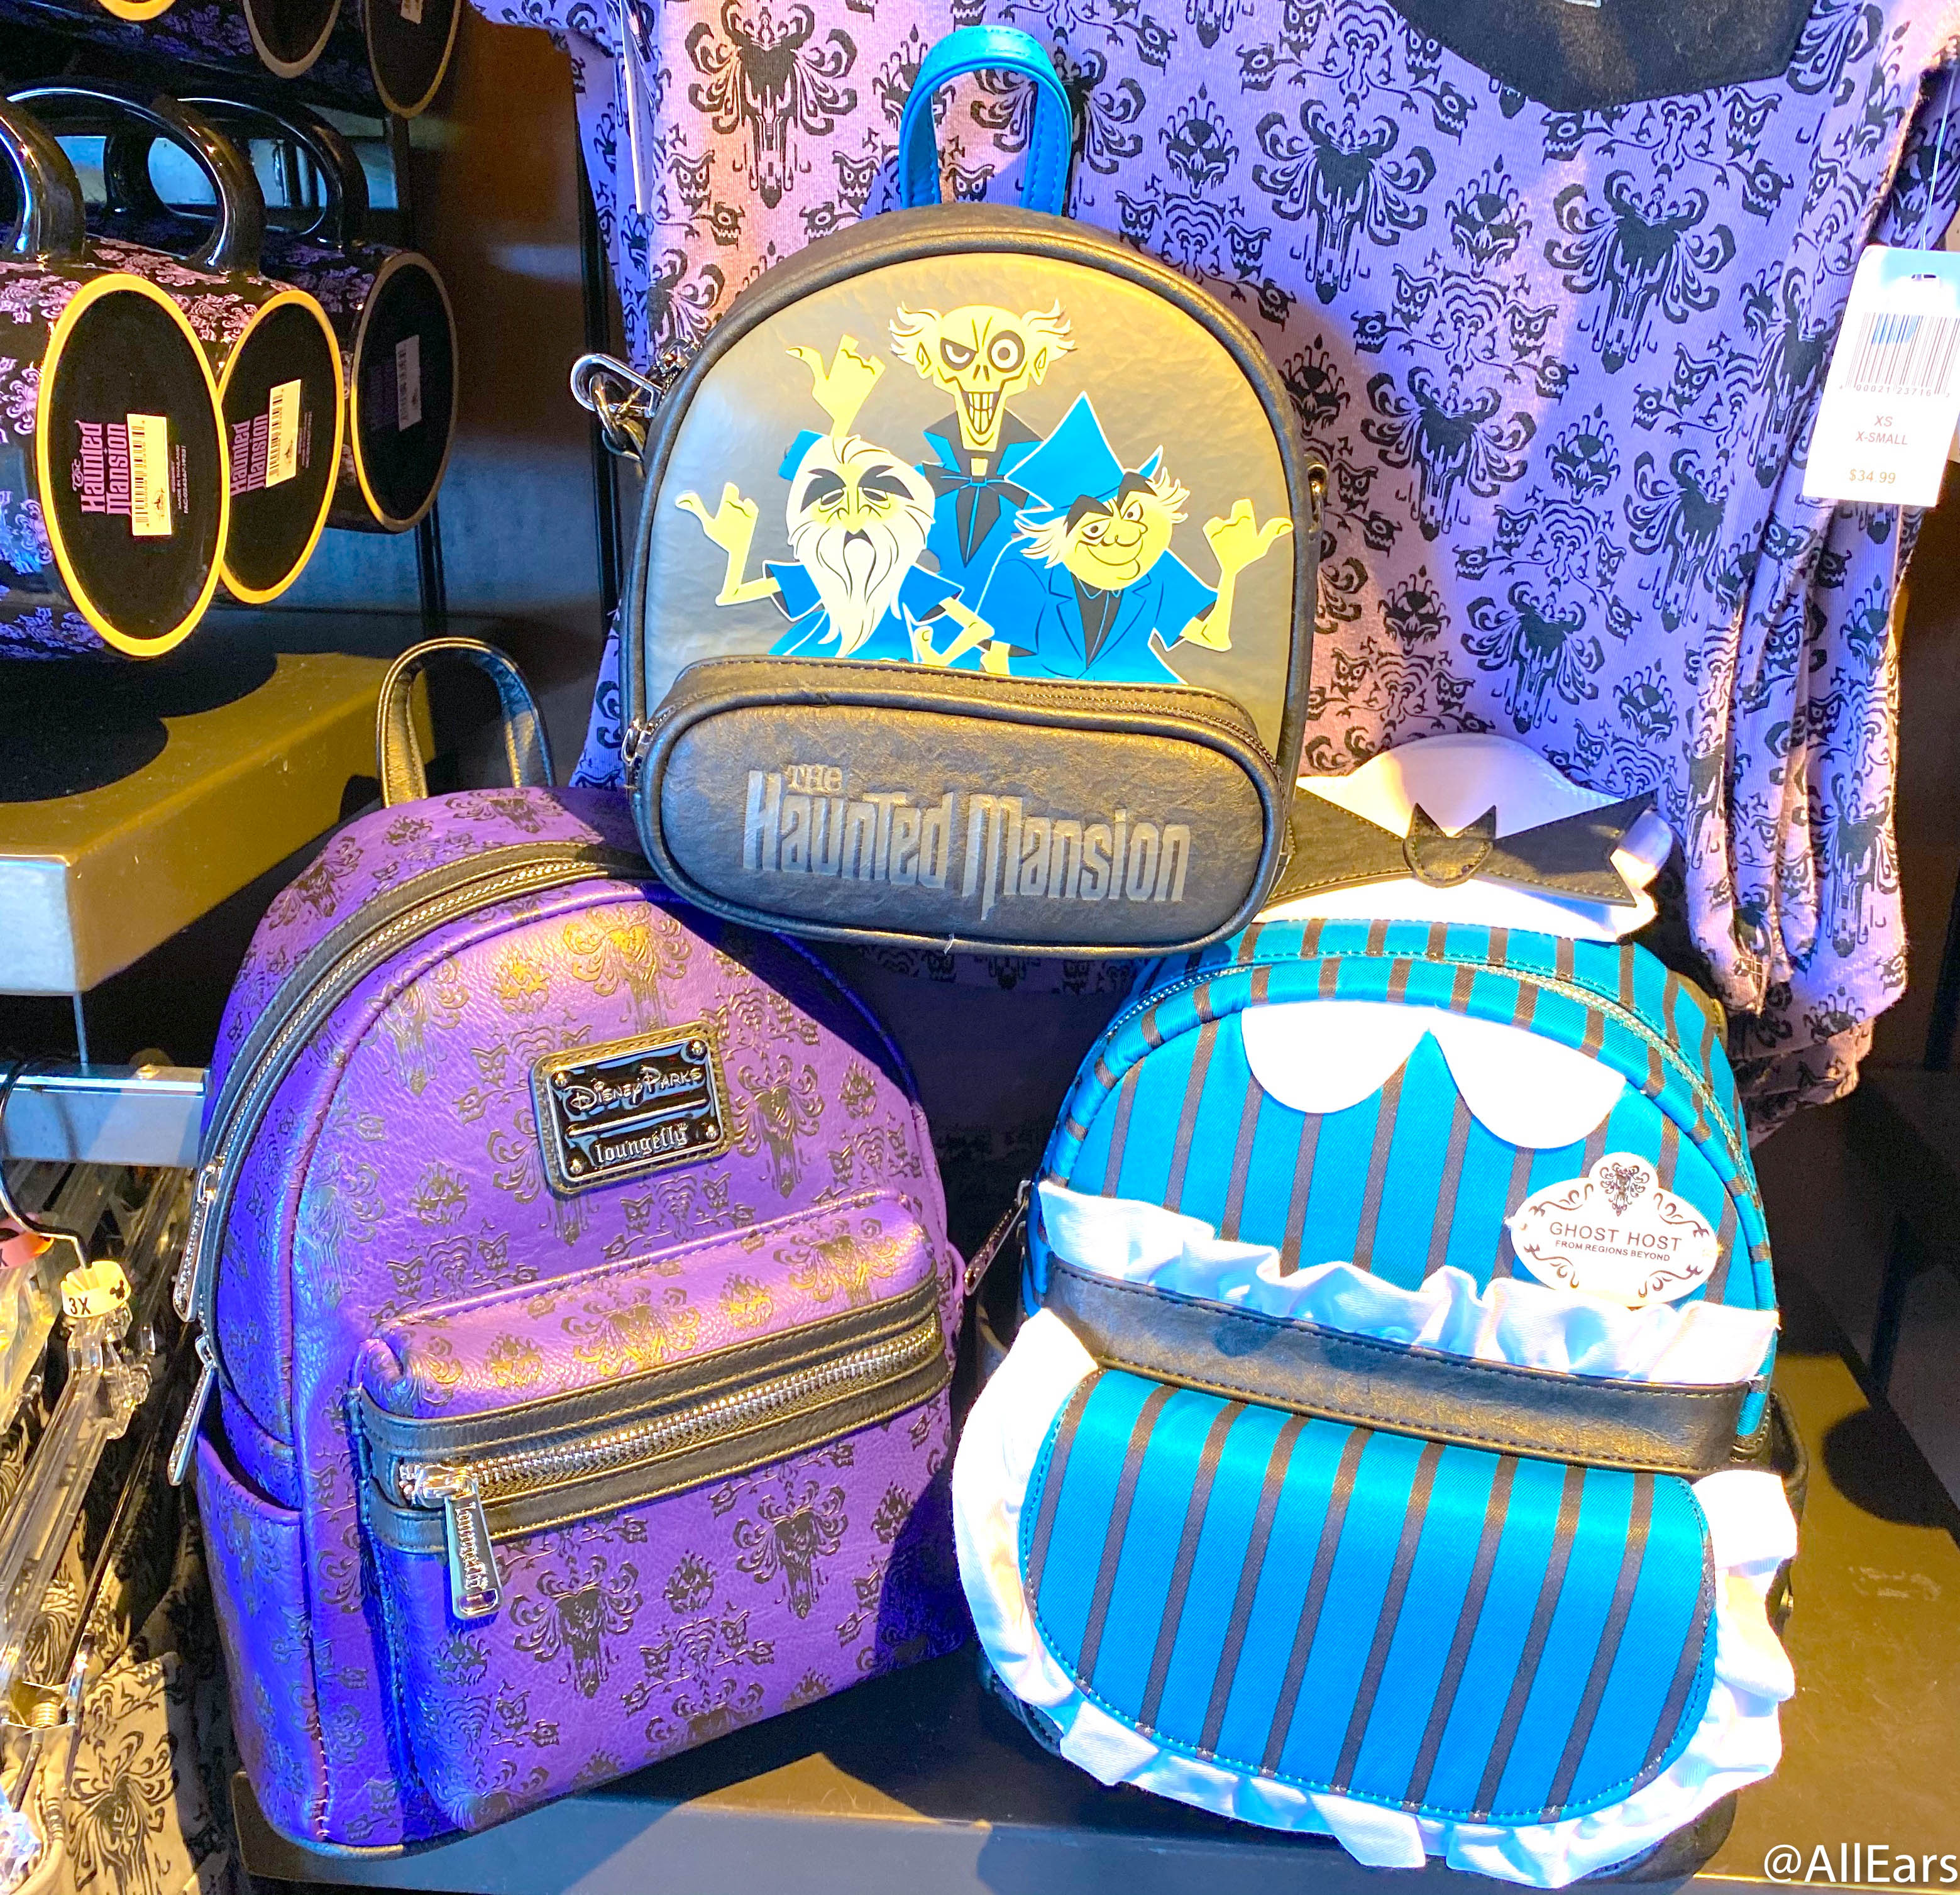 Haunted Mansion Halloween 2020 Become a Ghost Host Carrying Around the NEW Haunted Mansion